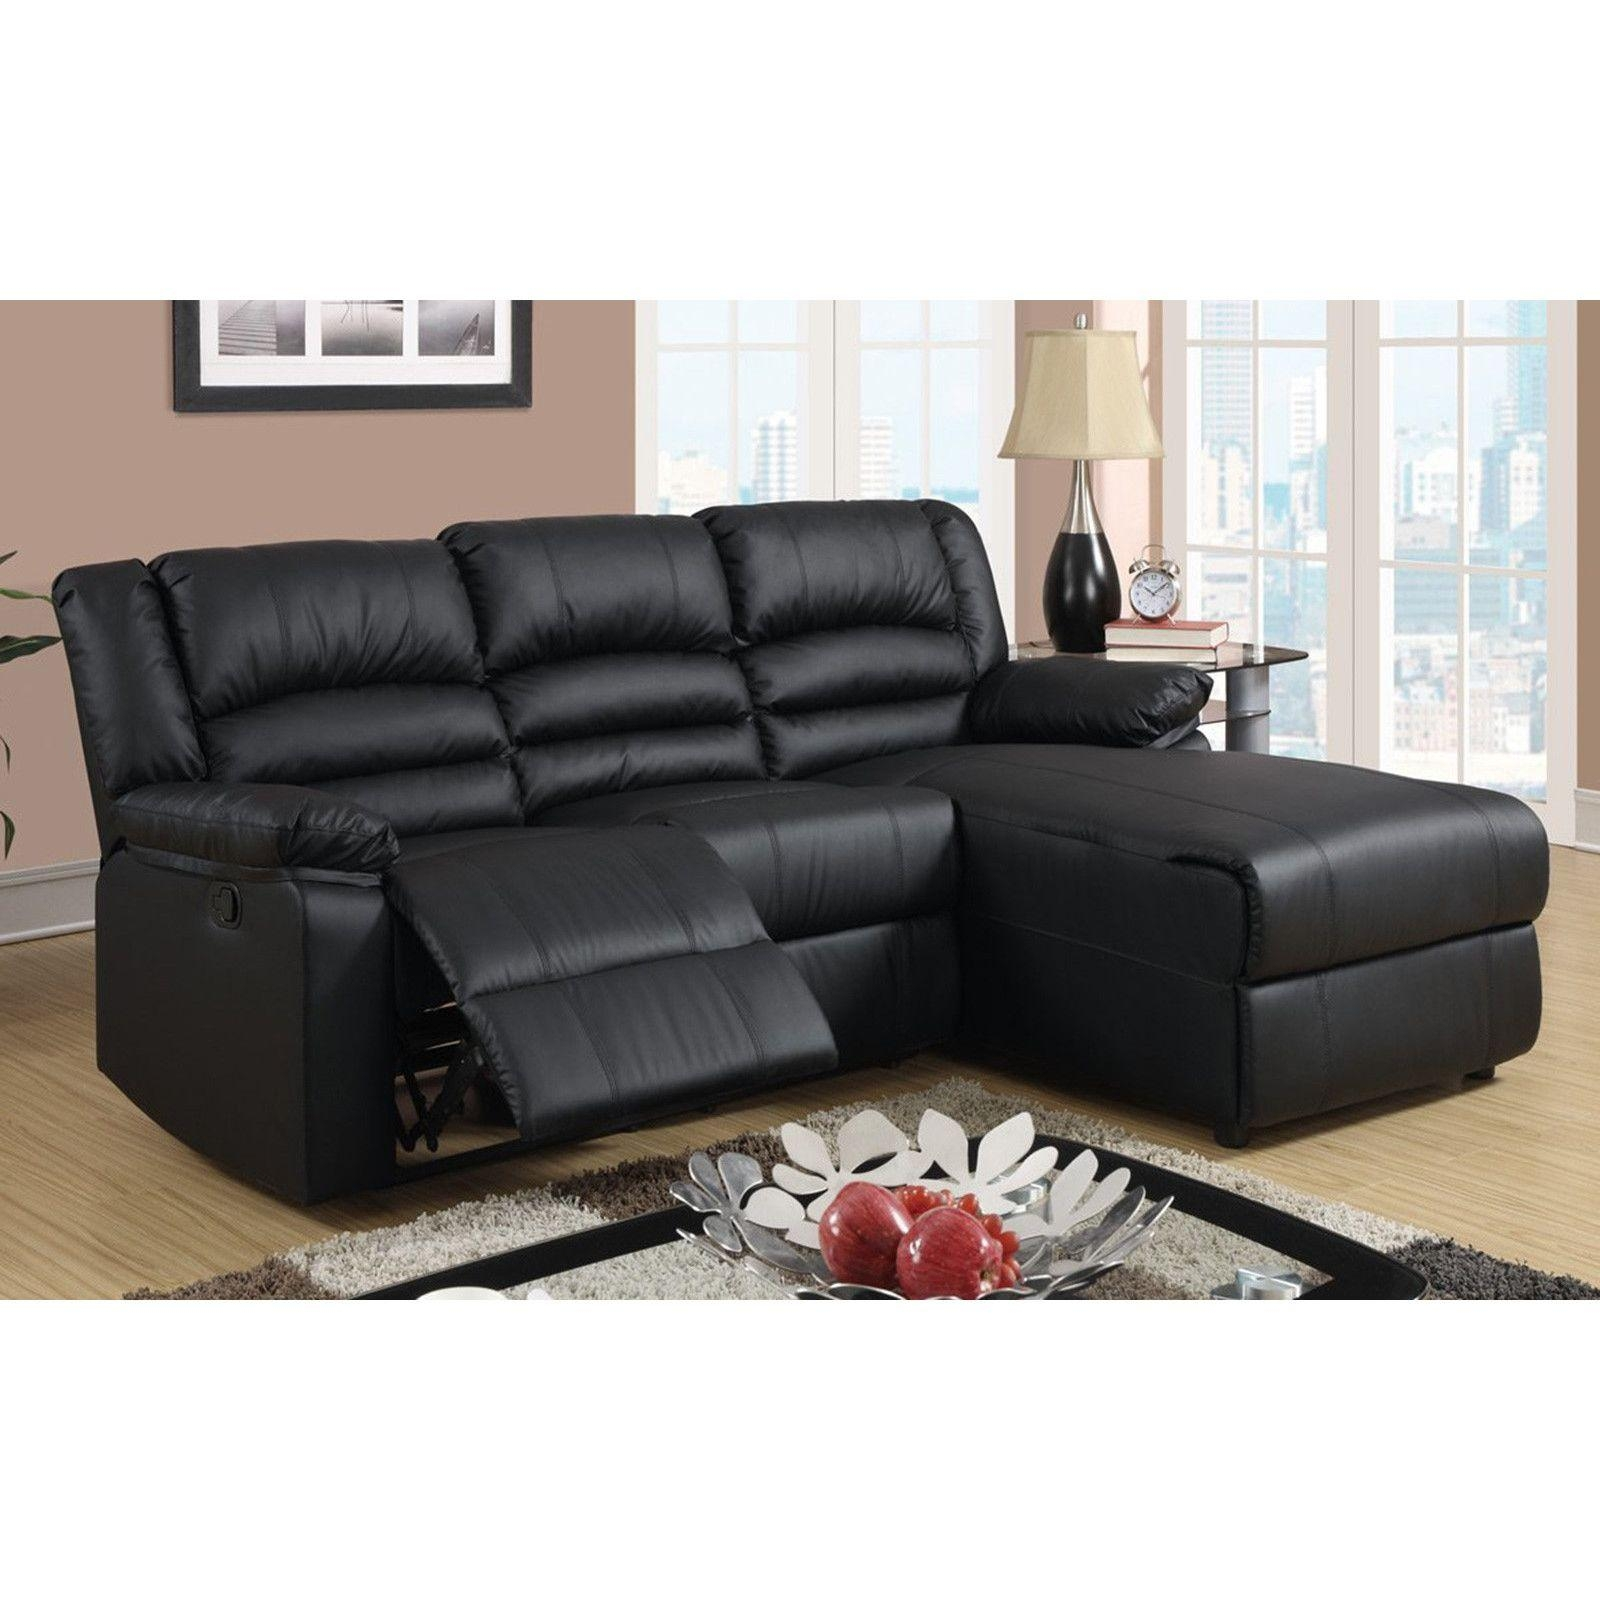 Furniture: Jedd Fabric Reclining Sectional Sofa | Sectional In Curved Sectional Sofa With Recliner (Image 12 of 15)